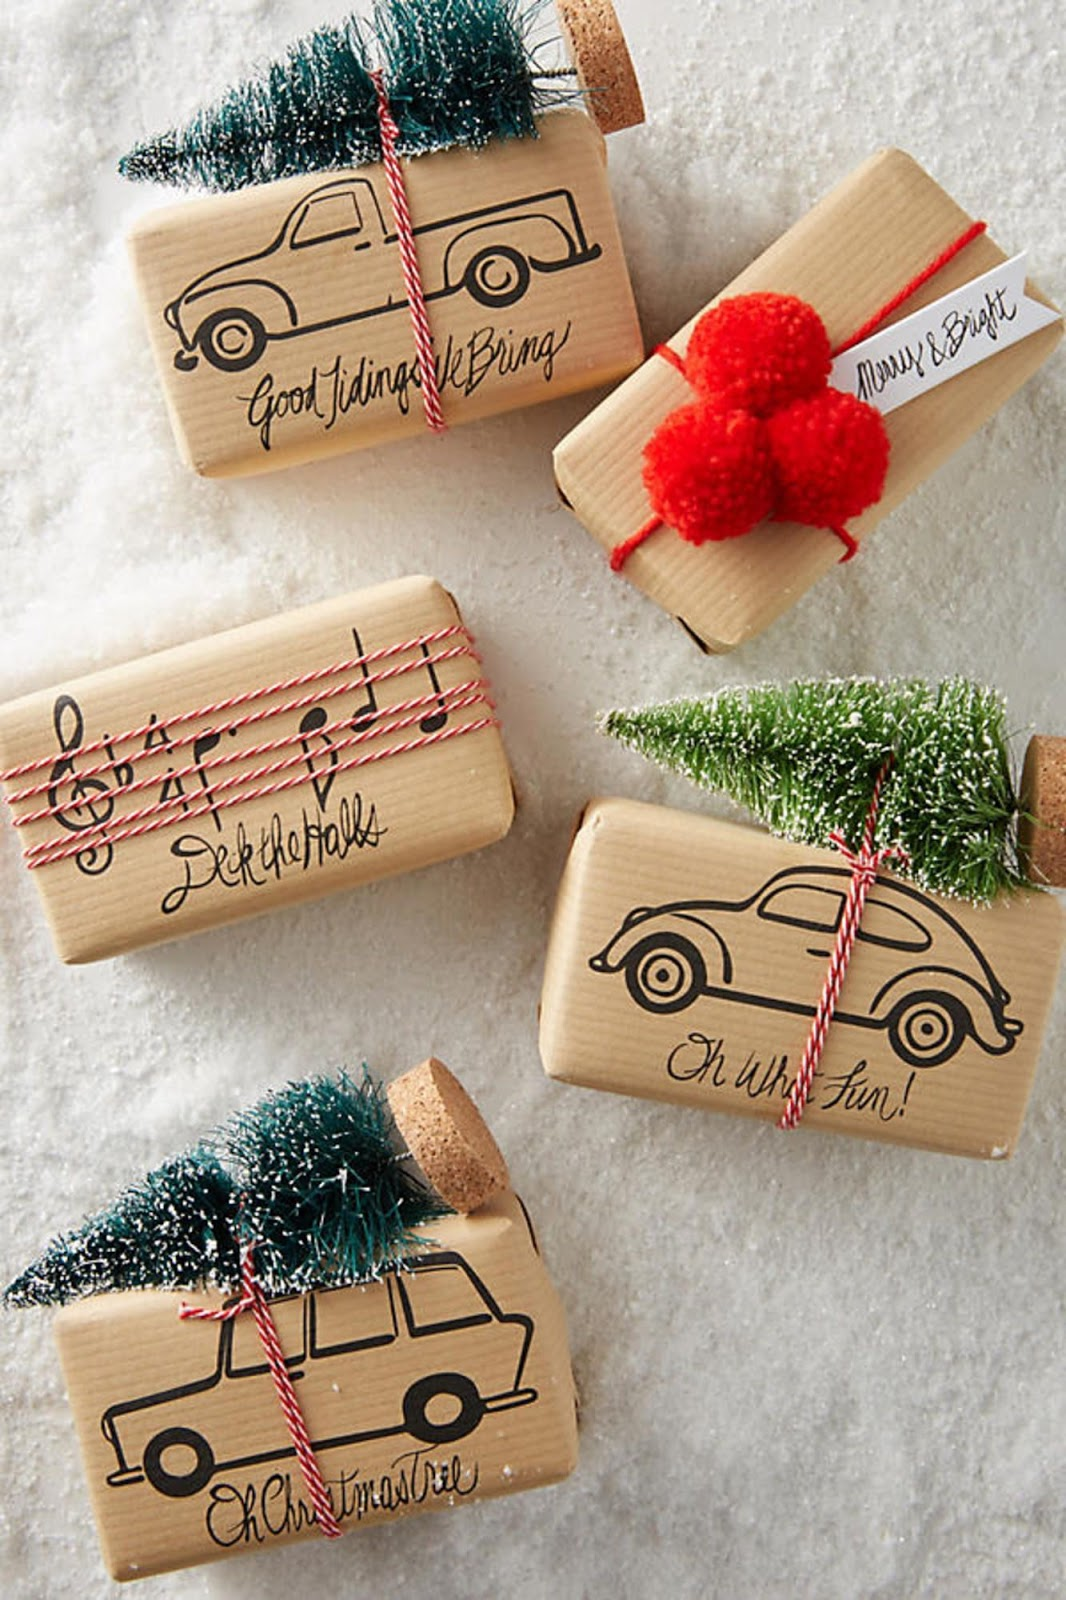 How To Choose The Best Gift Wrapping Paper?